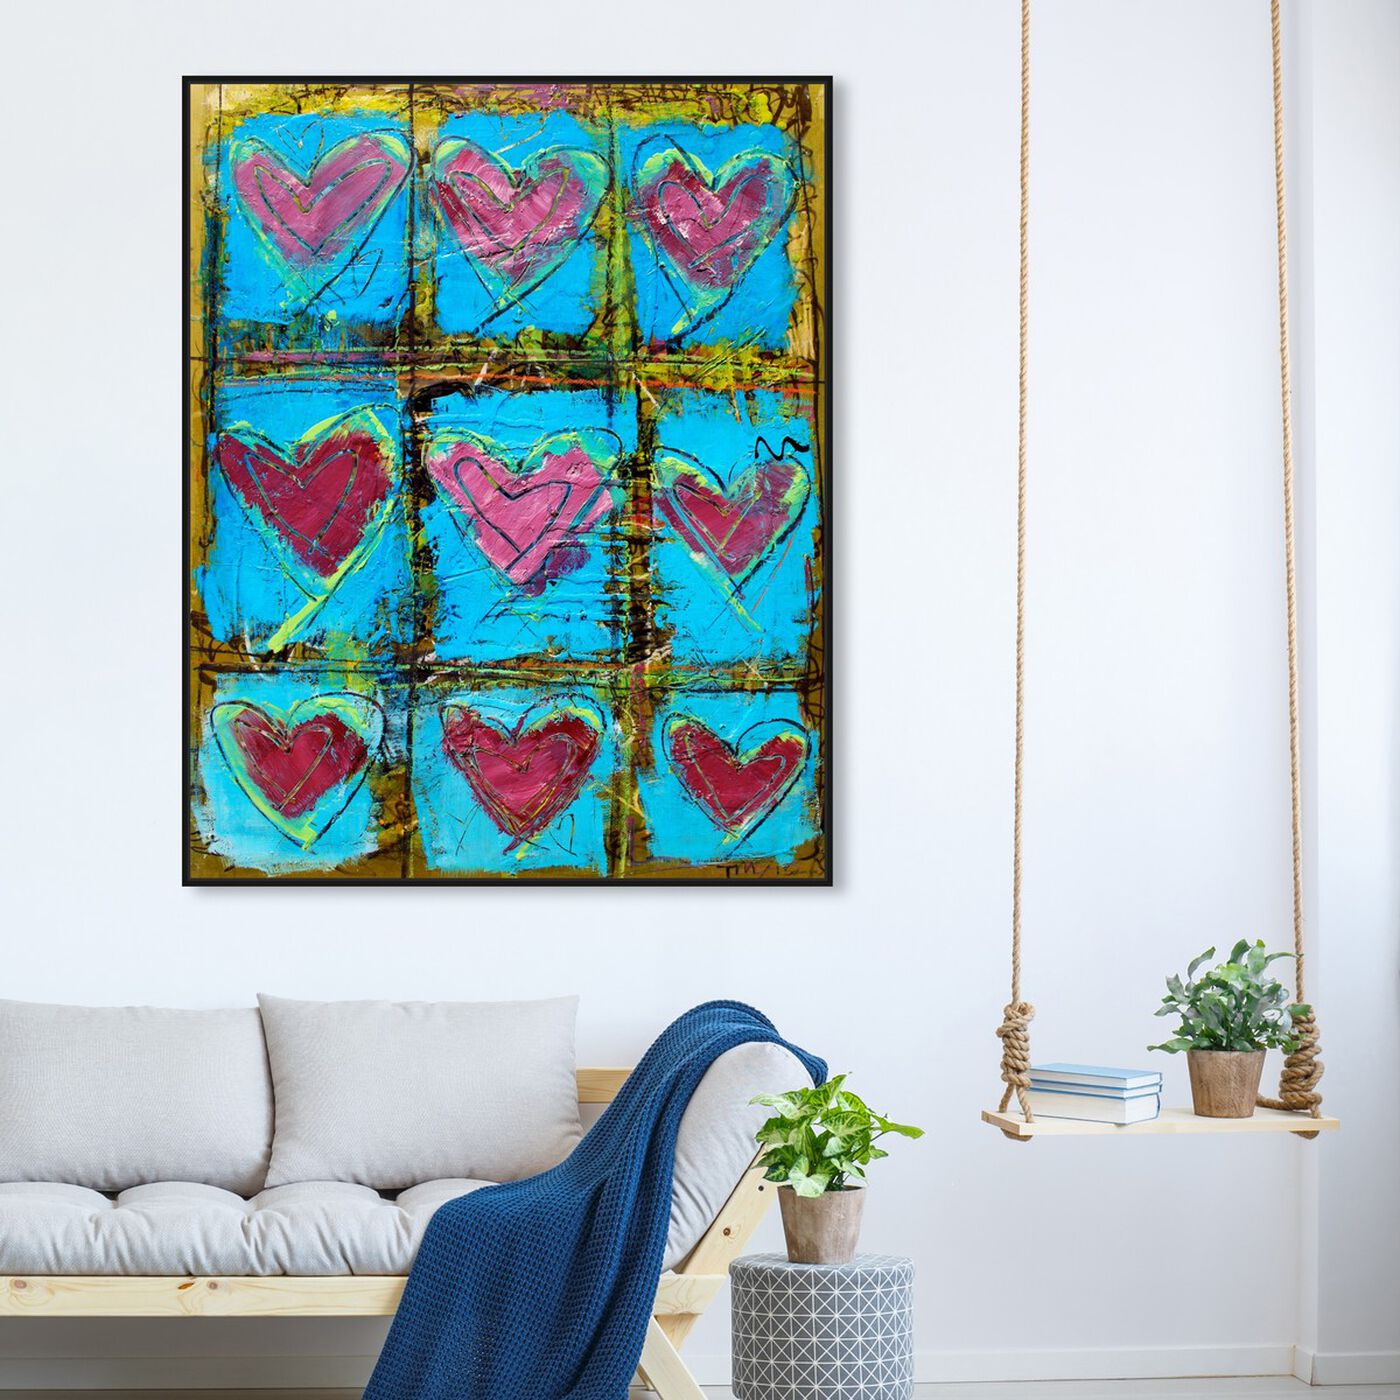 Hanging view of LoveTEAL by Tiago Magro featuring abstract and textures art.